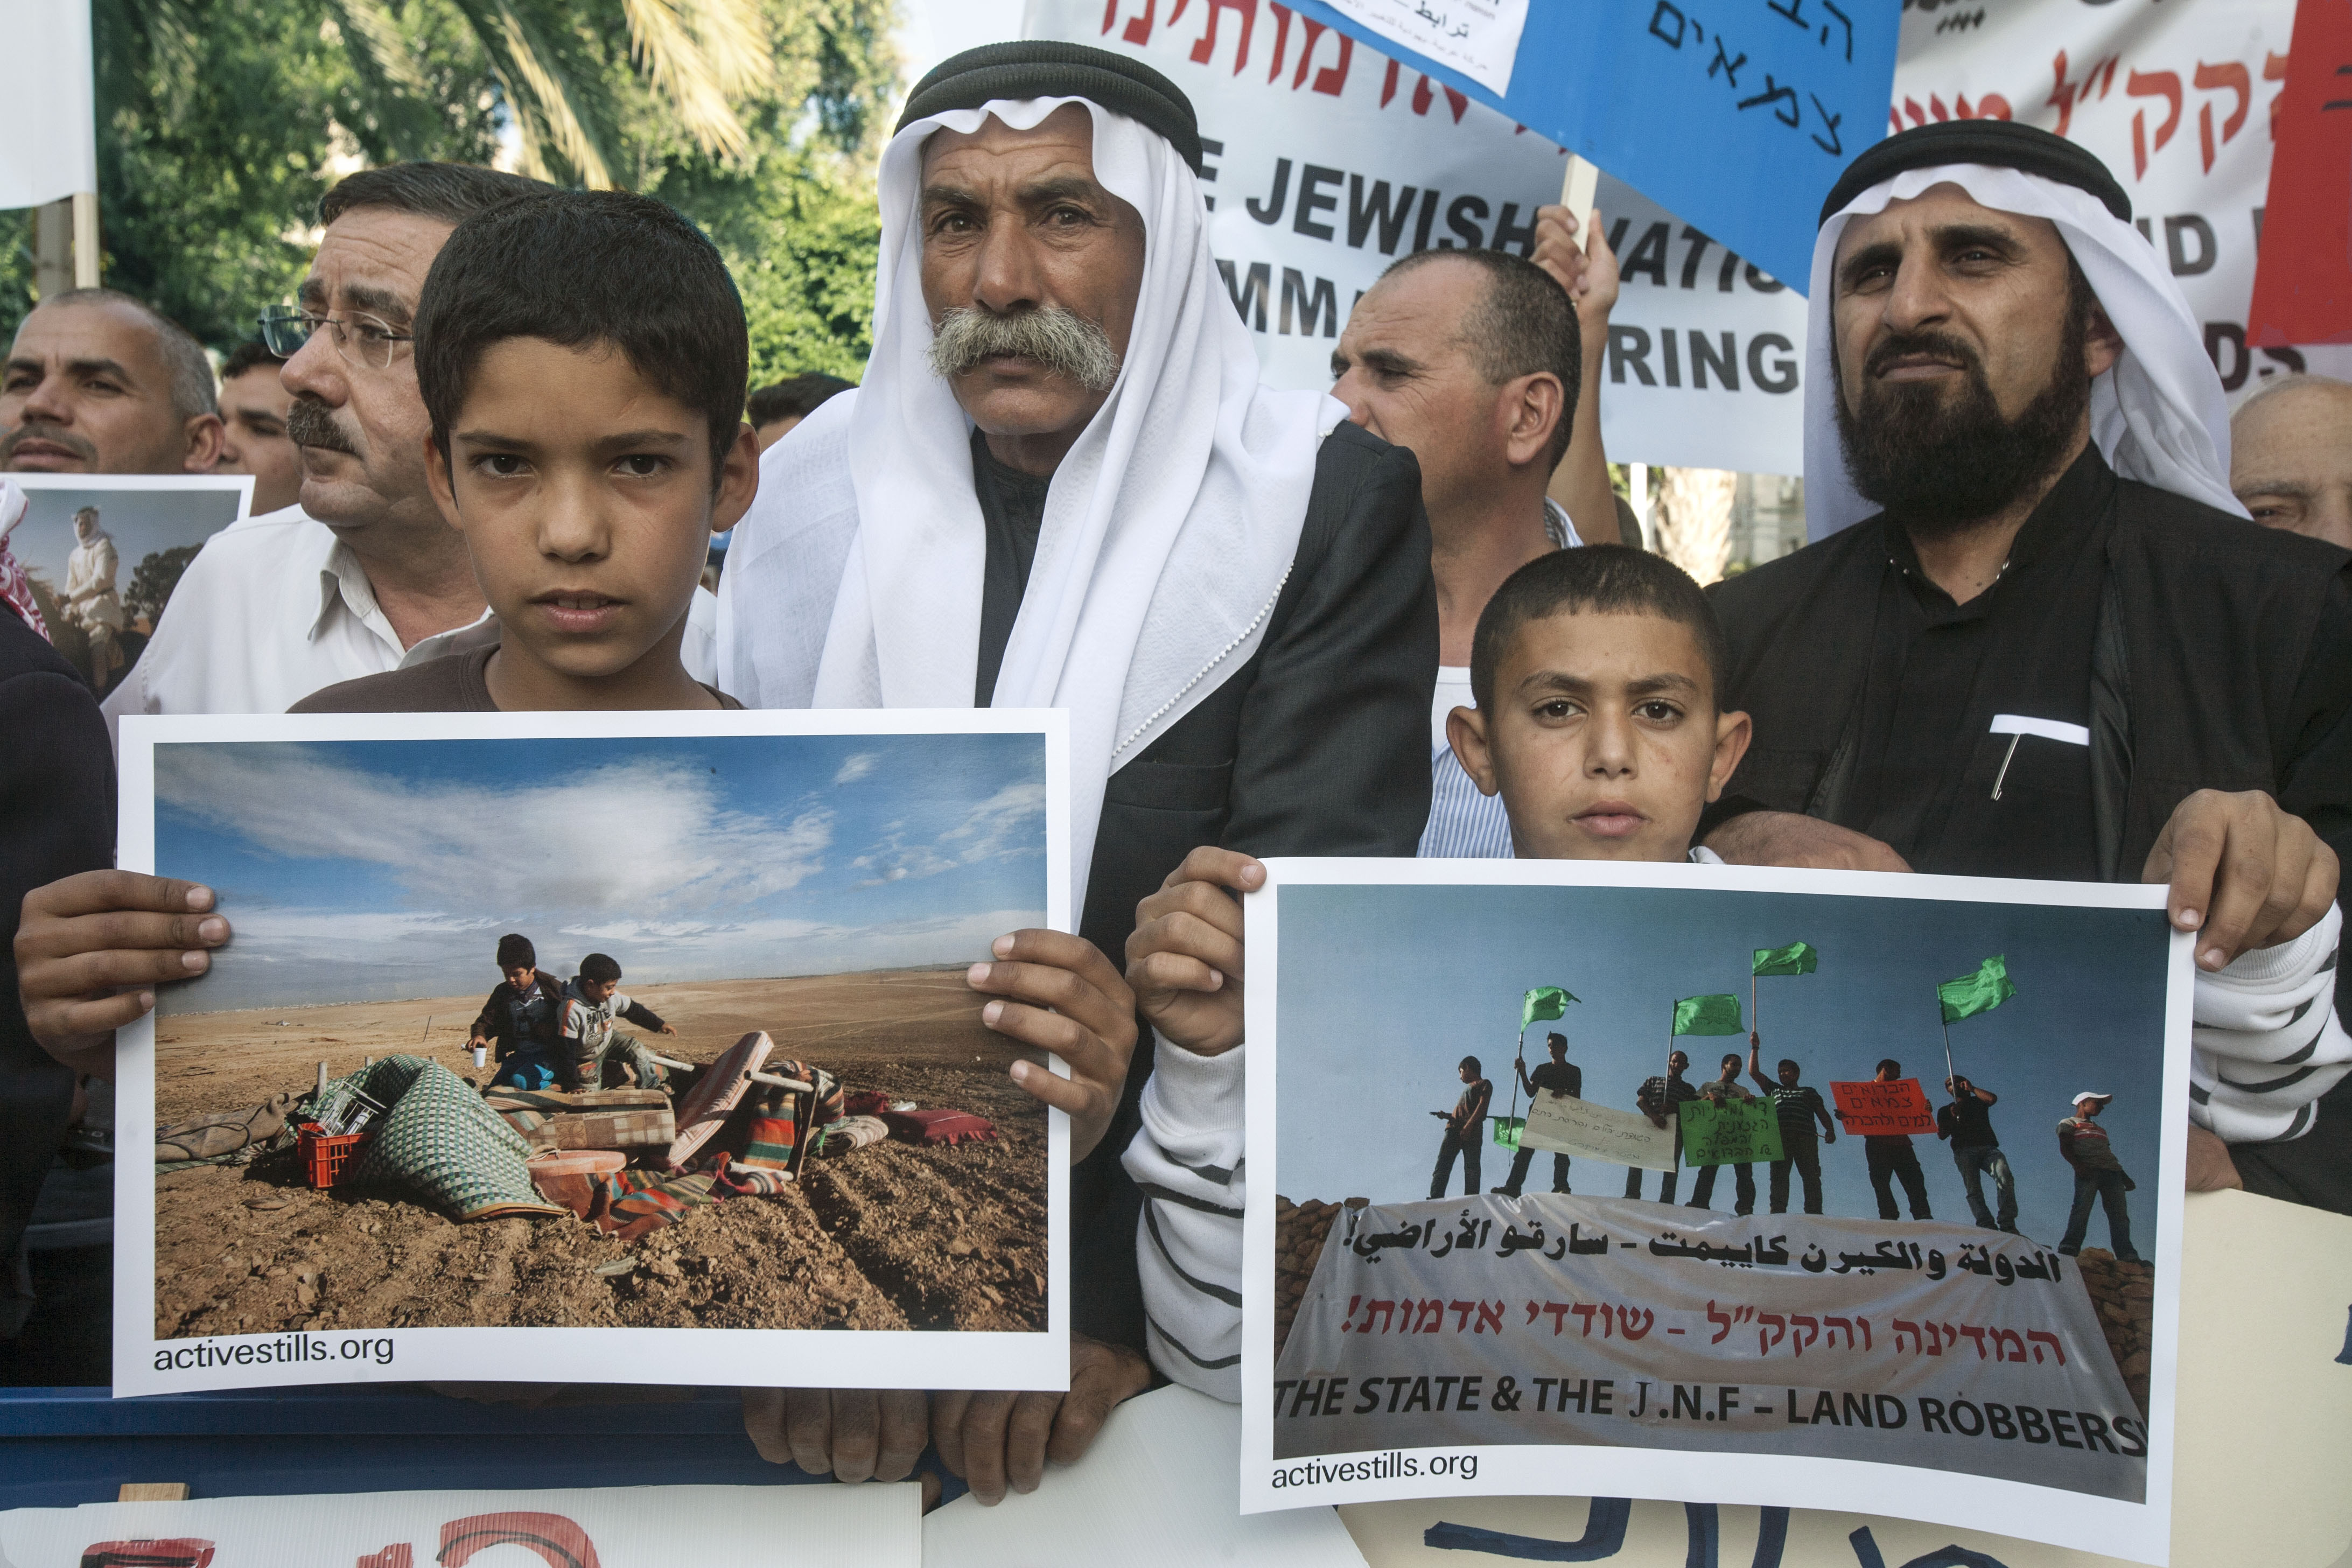 Protests against evacuation of Bedouin villages in the Negev Desert, Al Araqib